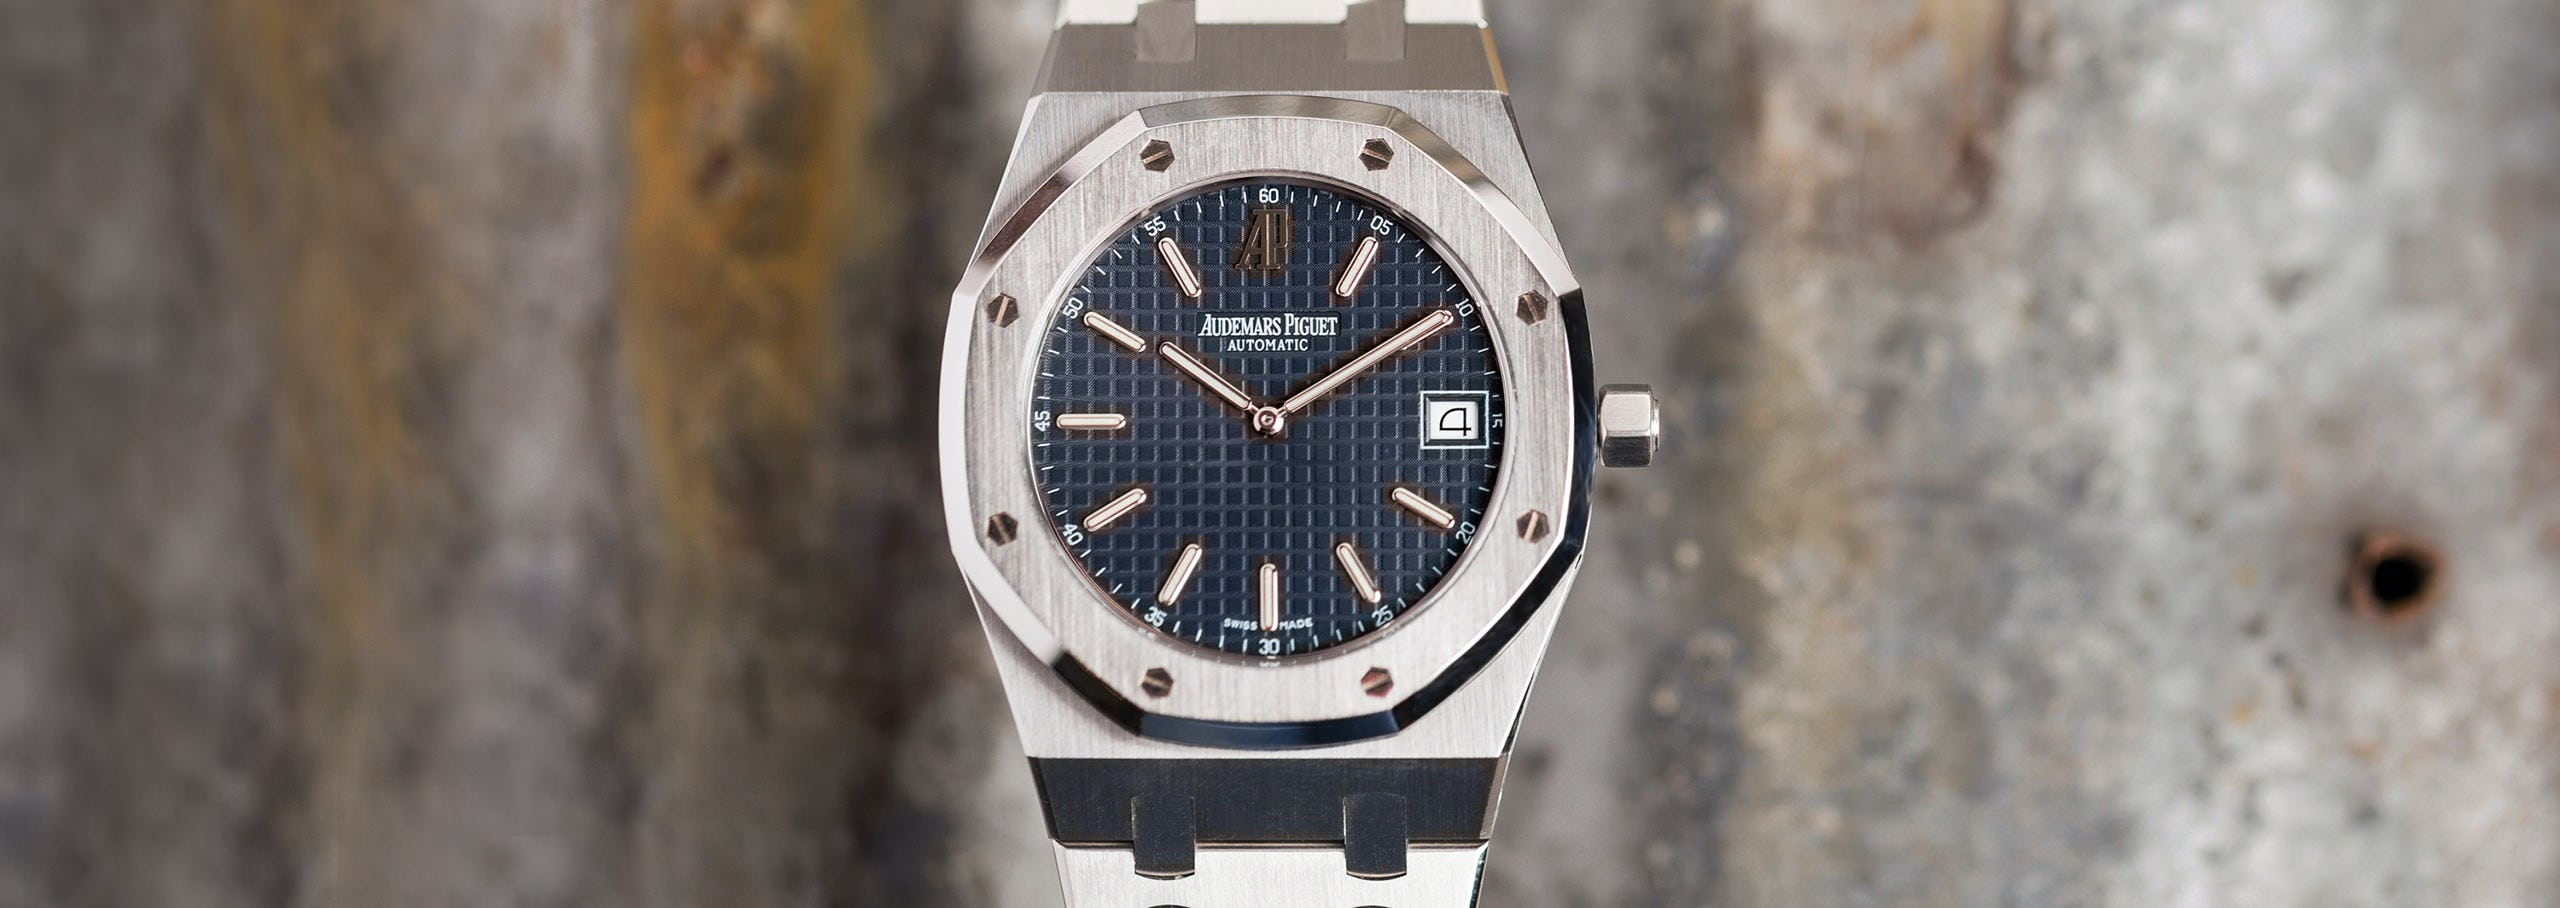 History of Audemars Piguet: 1875 to Present Day